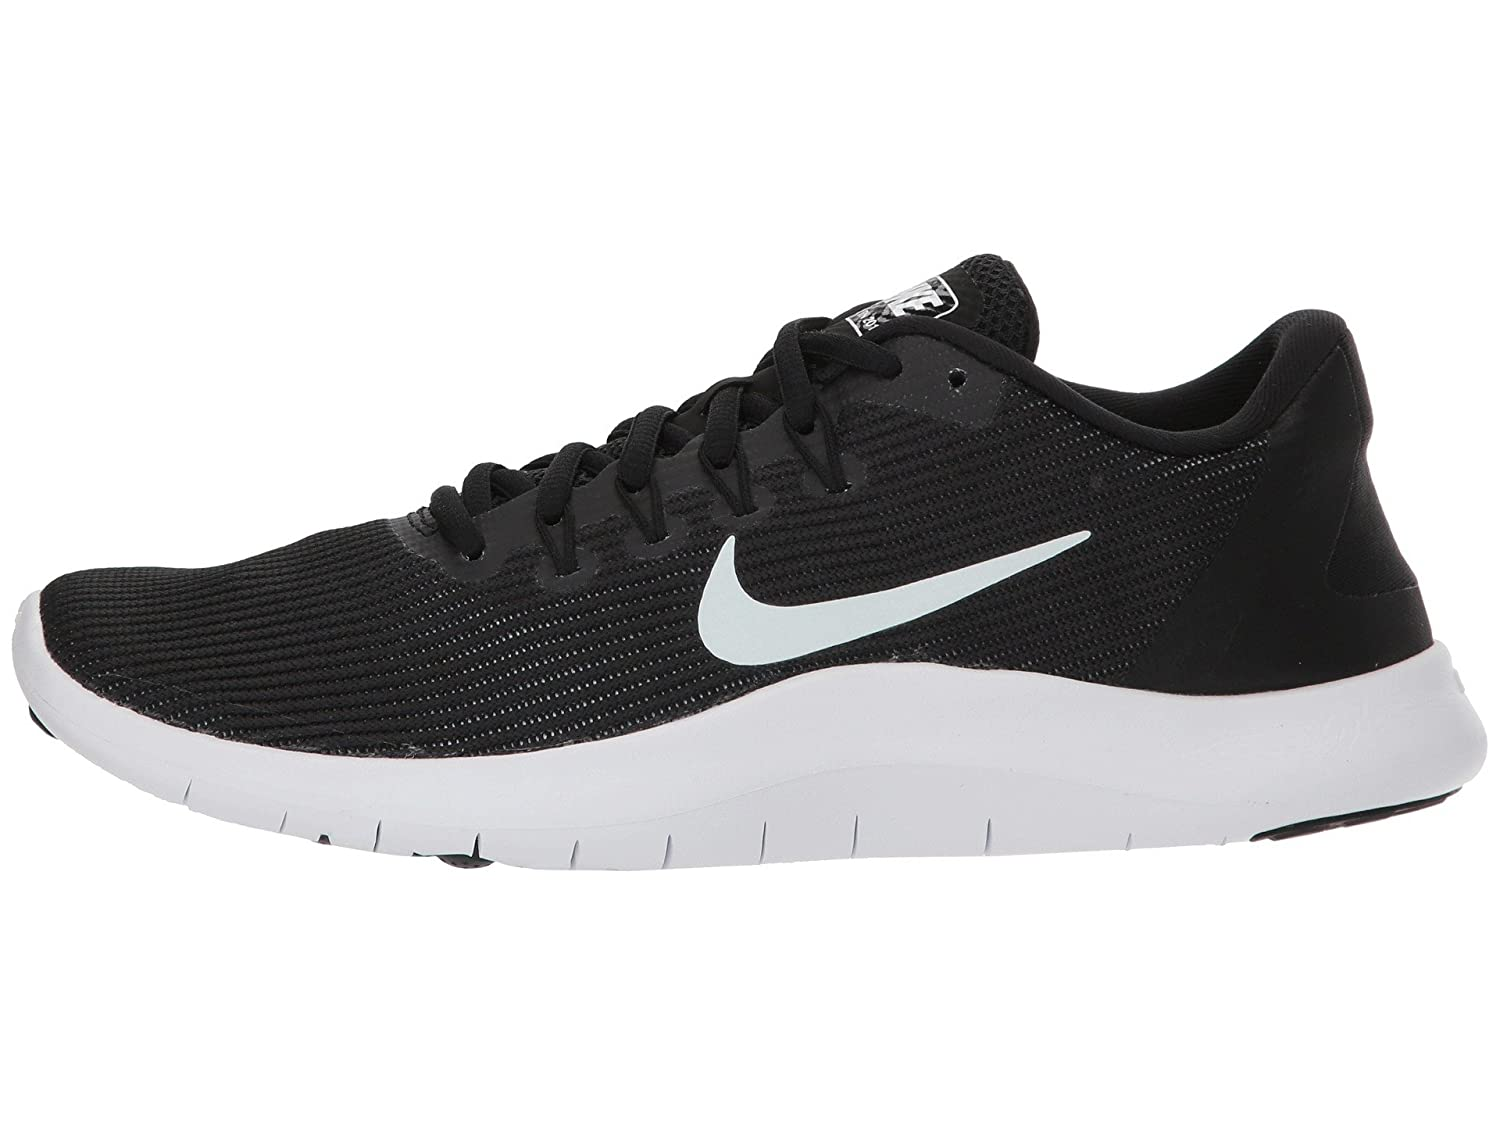 NIKE Women's Flex RN 2018 Running Shoe B075ZY97L6 10.5 B(M) US|Black/White-black